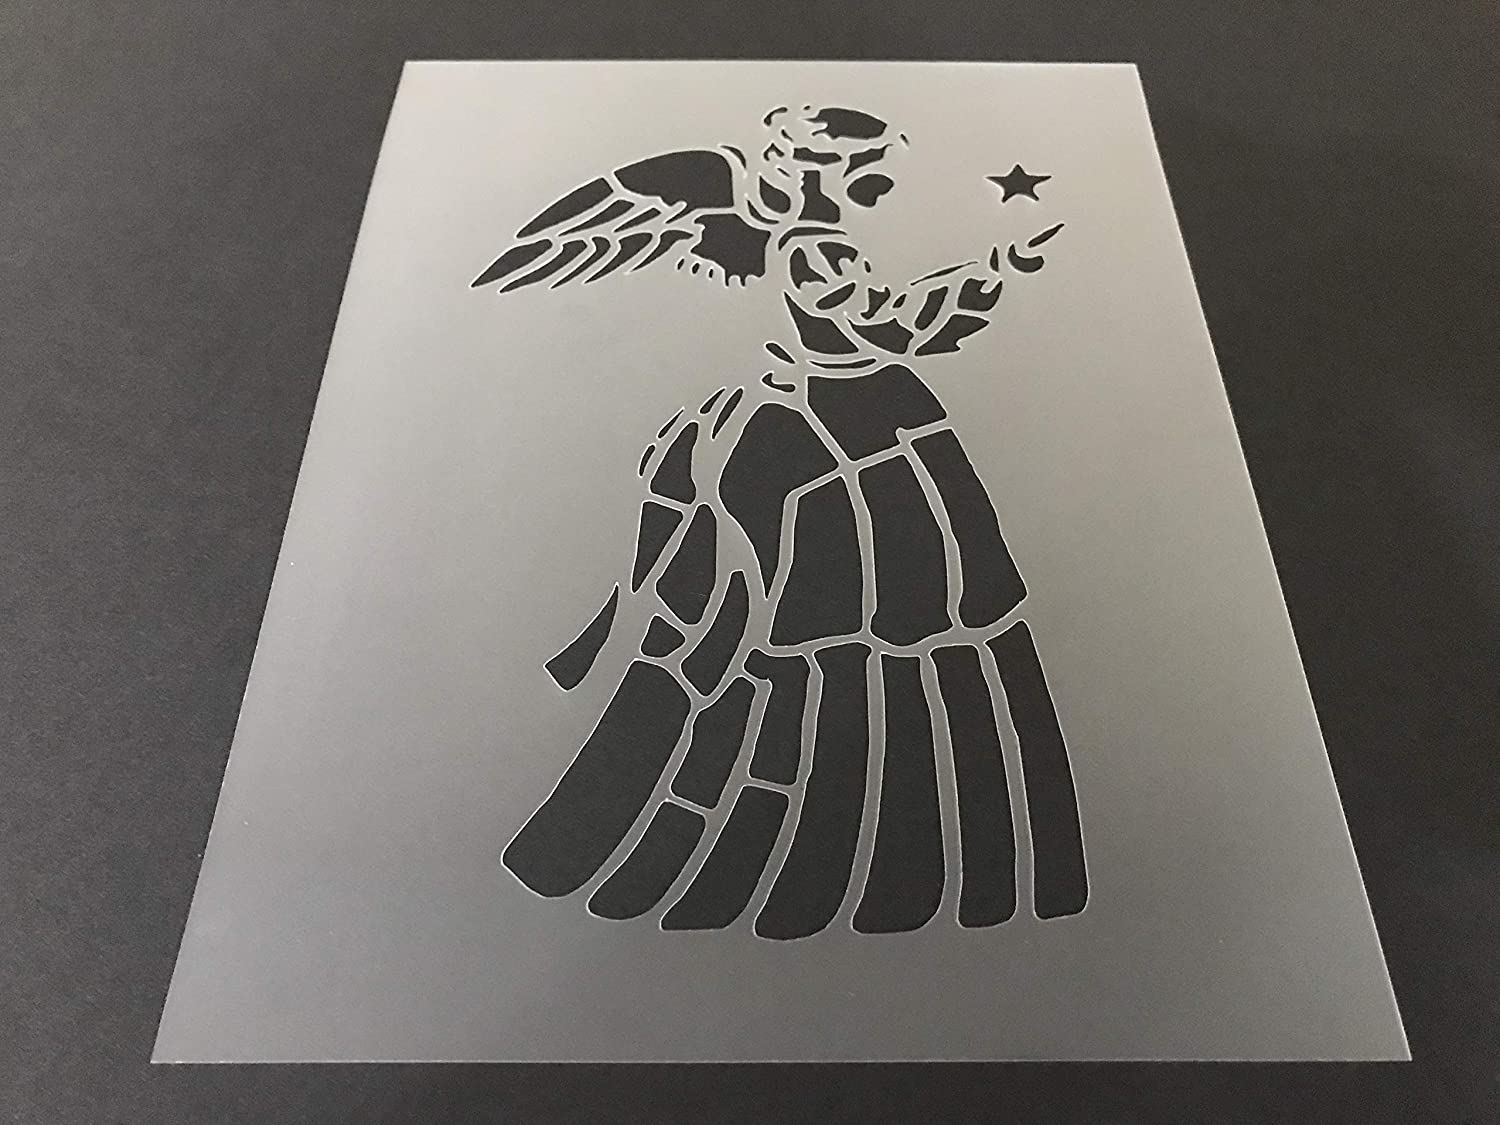 Angel Stencil Direct stock discount #4 Reusable 10 Many popular brands mil 10.5in x 8in sheet Thick